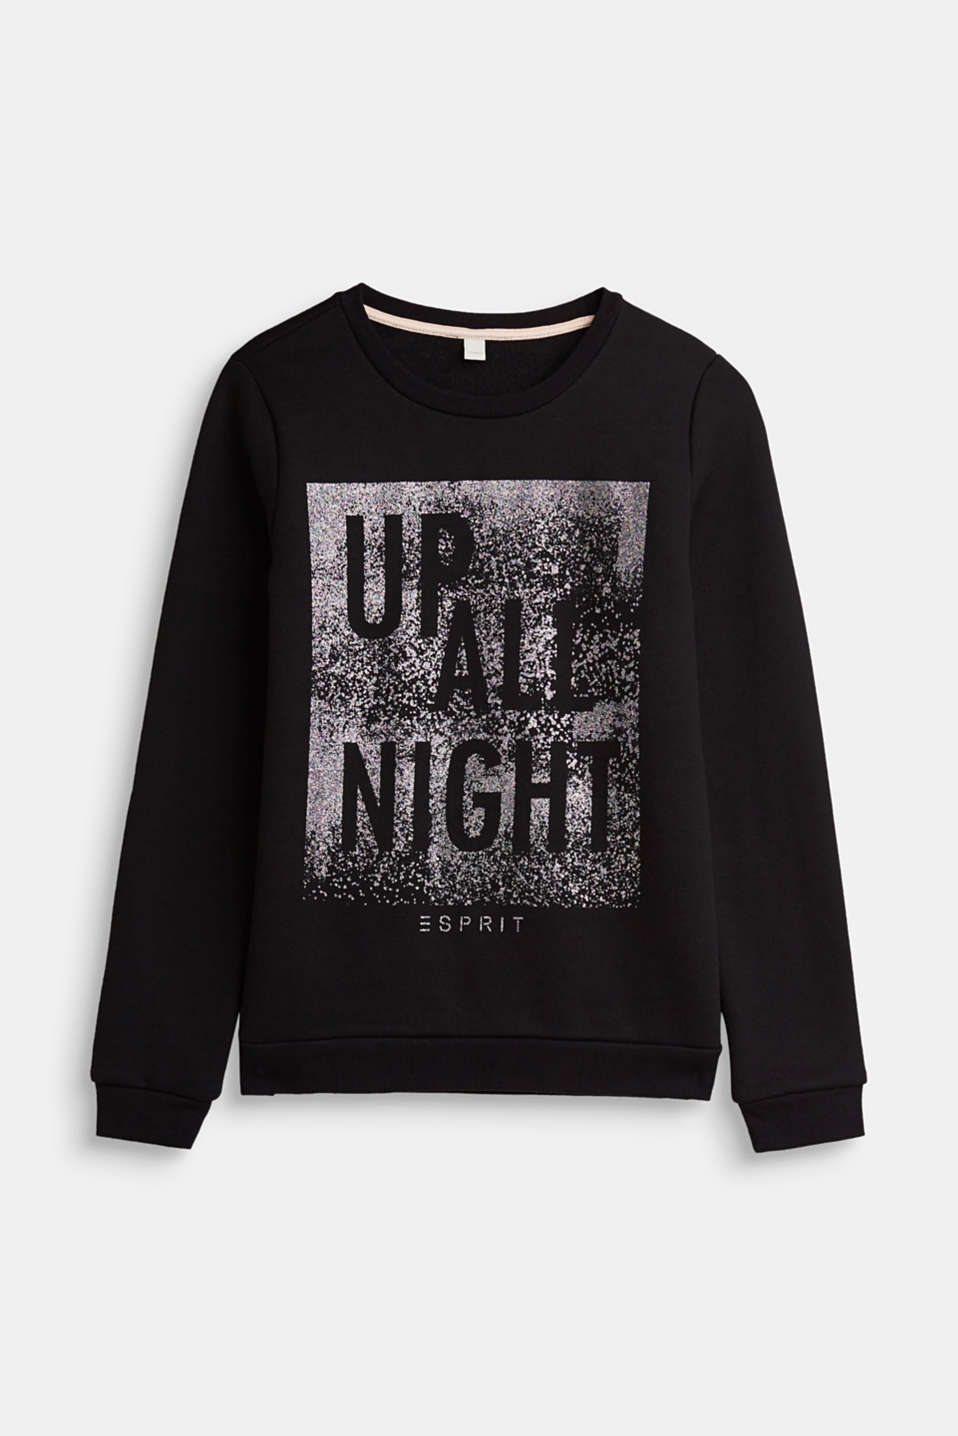 Esprit - Sweatshirt with a glitter statement